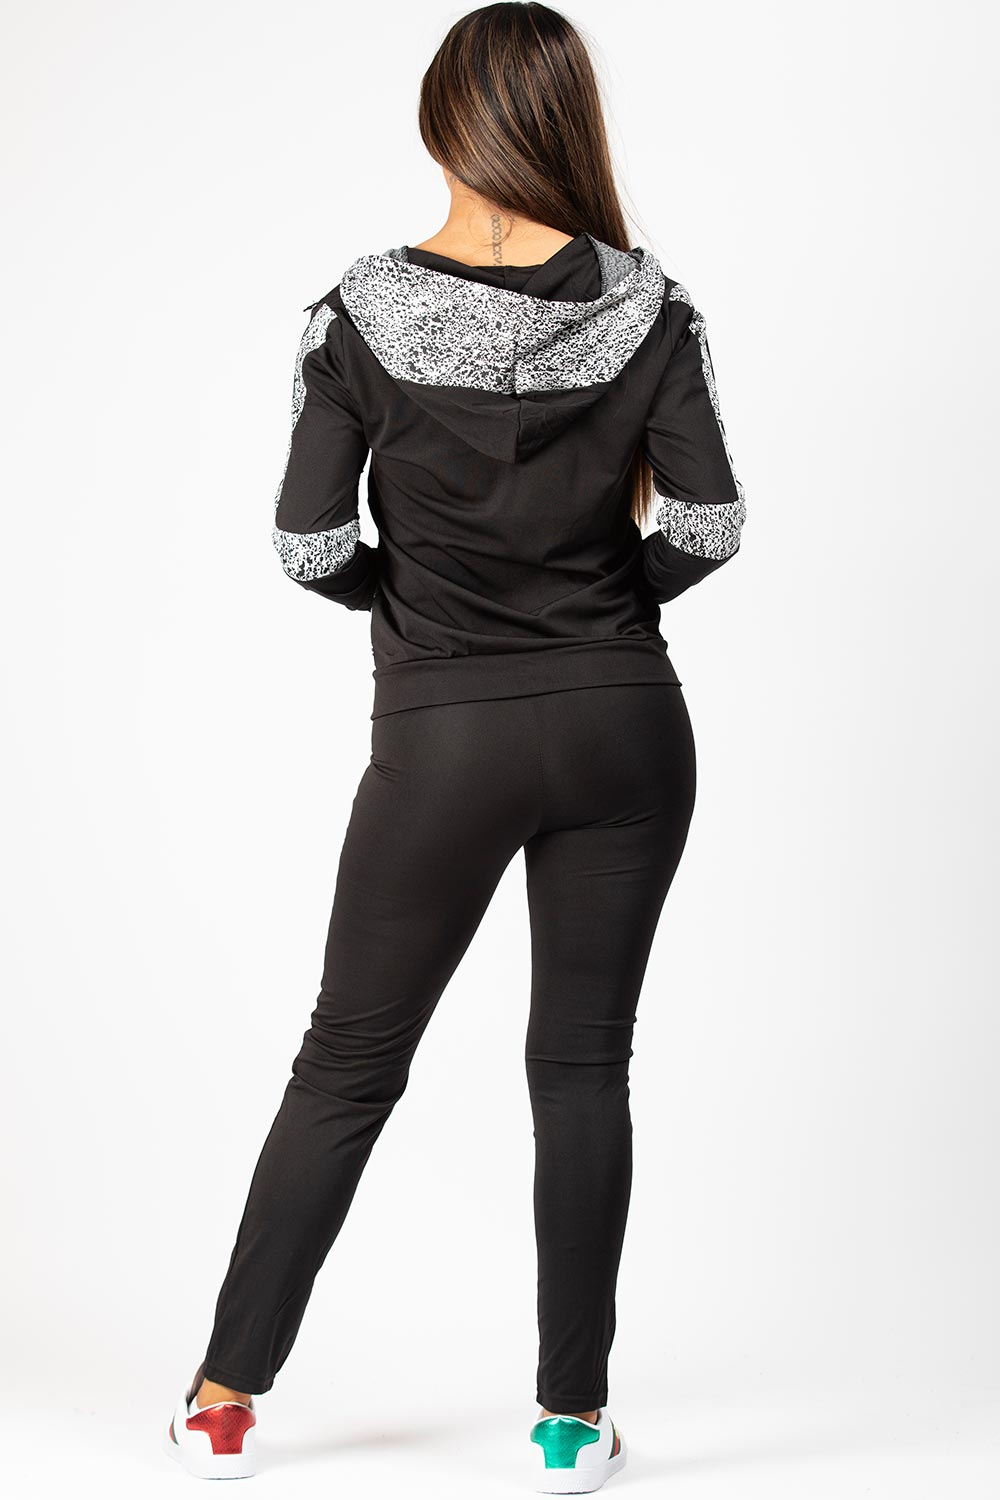 black and white hooded tracksuit womens